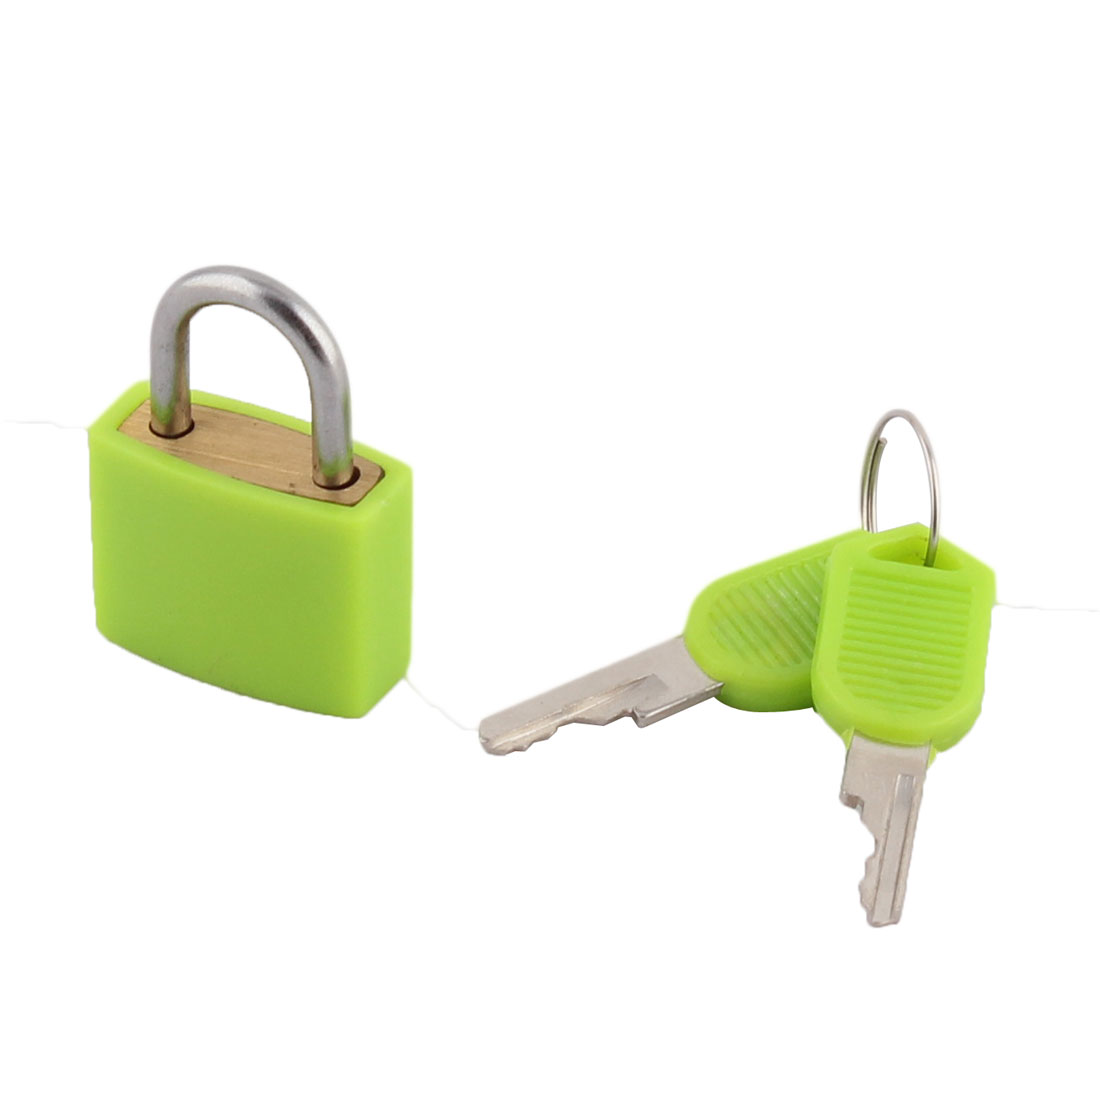 Household Office Cabinet Drawer Luggage Case Door Security Padlock Light Green